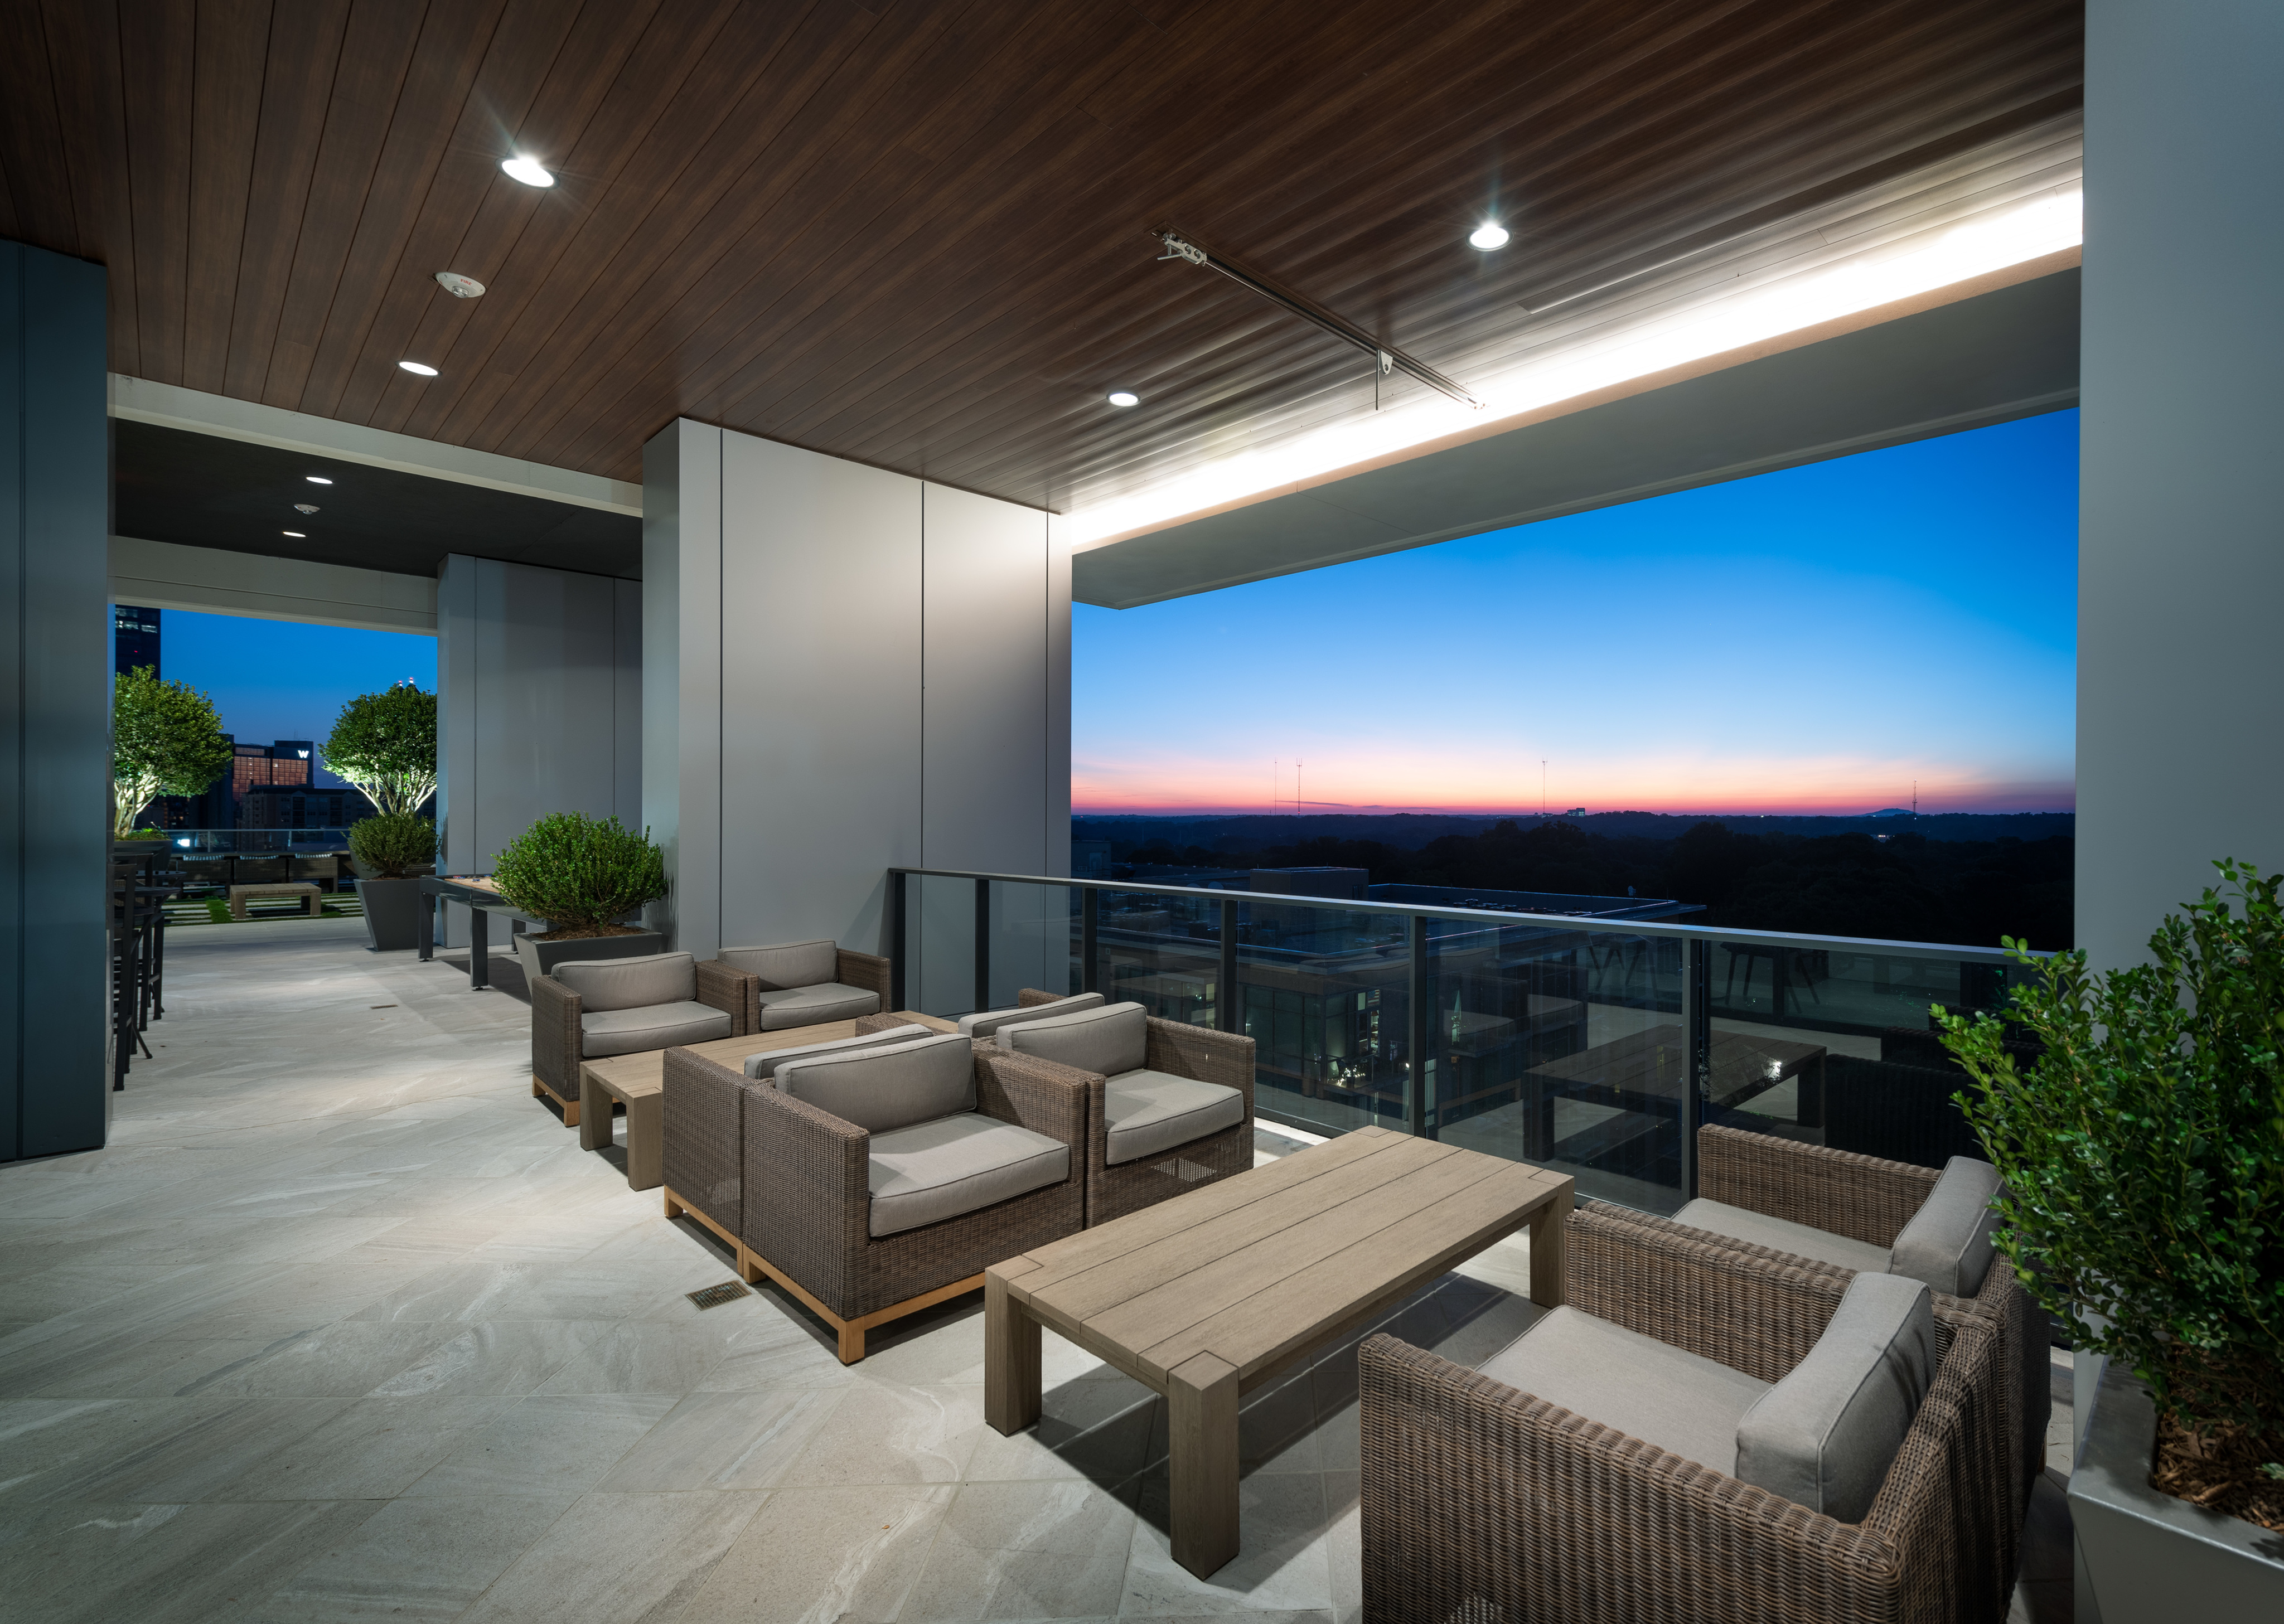 Image of Open-Air Loggia with Lounge Seating and Shuffleboard for Hanover Midtown